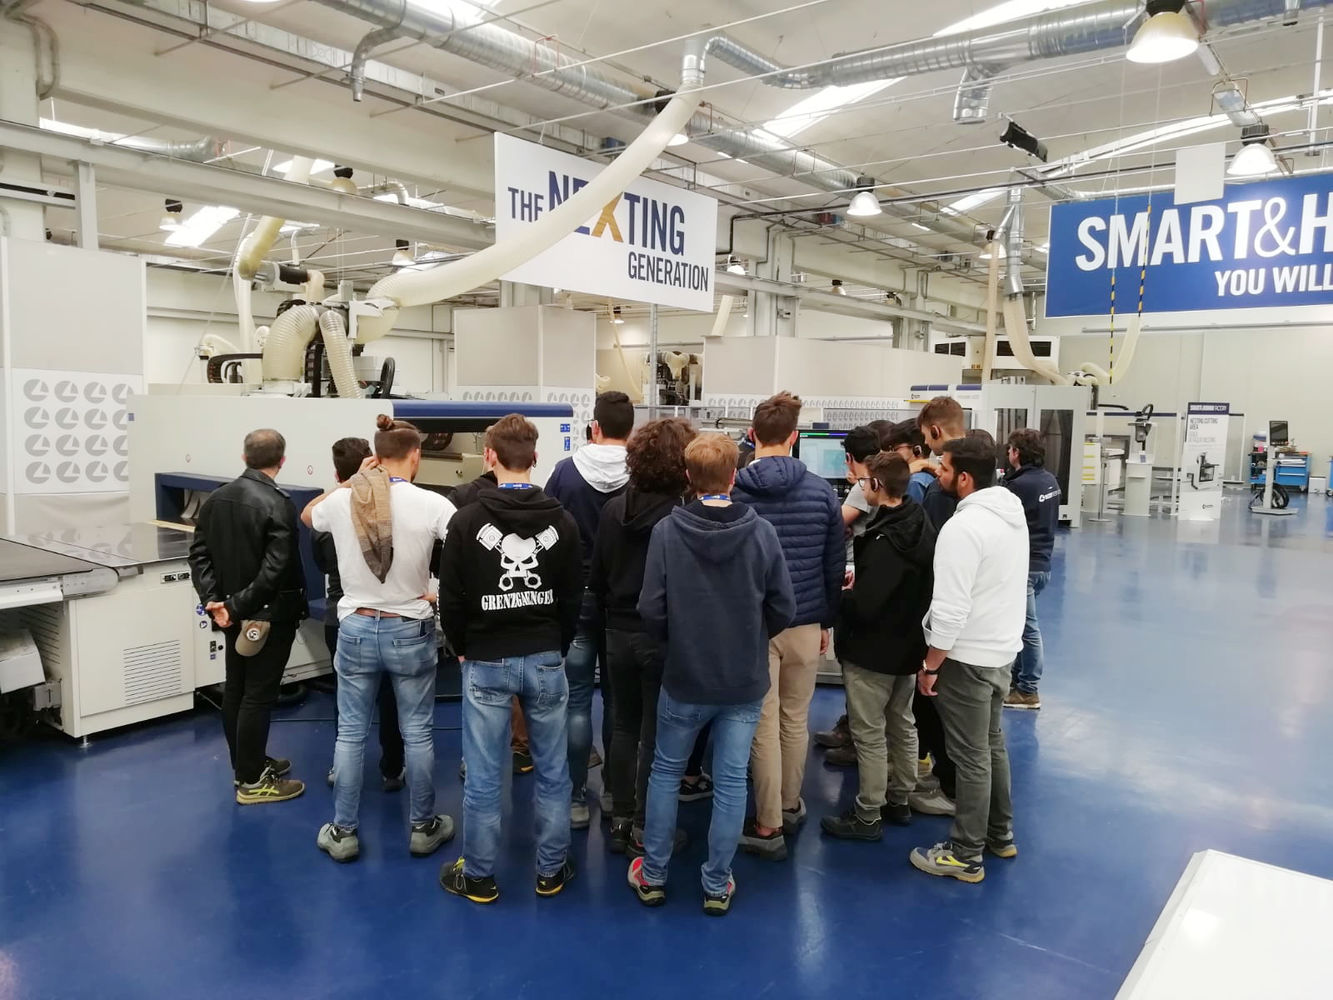 Amidst training and business: SCM opens its doors to display the best of its technologies